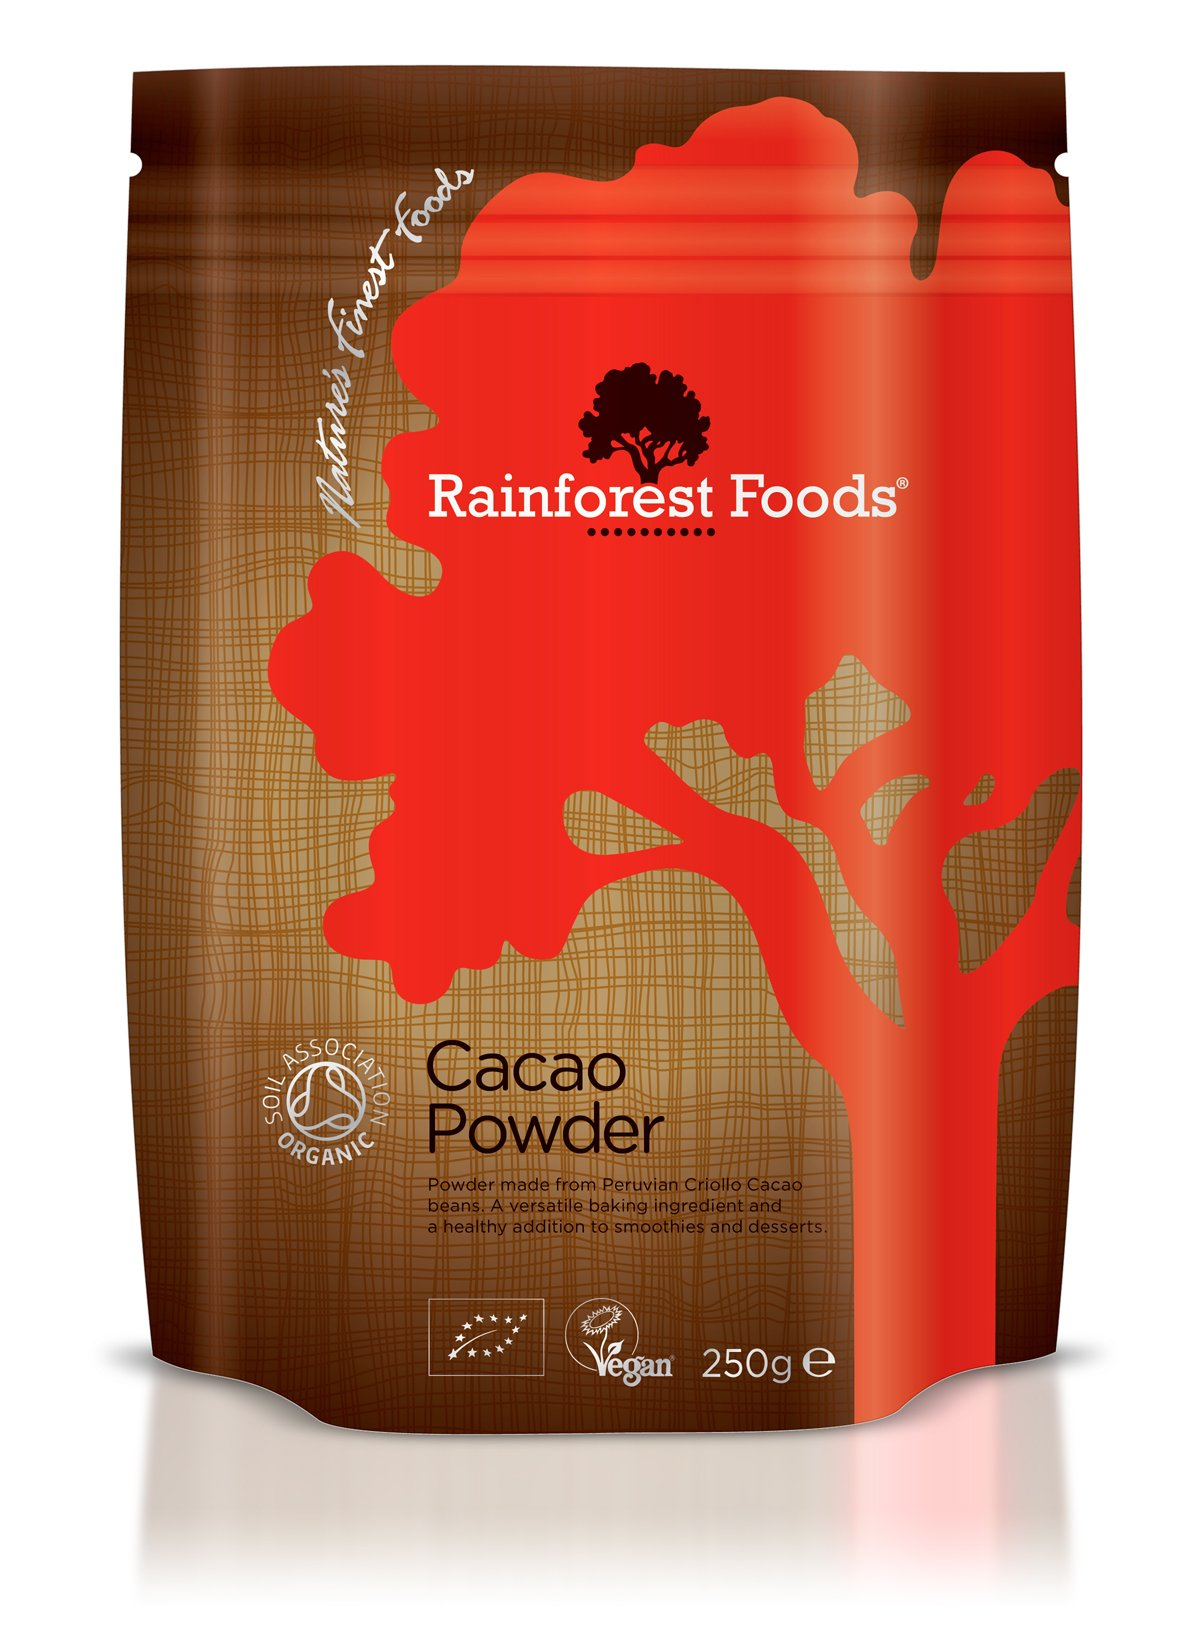 Rainforest Foods Organic Cacao Powder 250g by Rainforest Foods